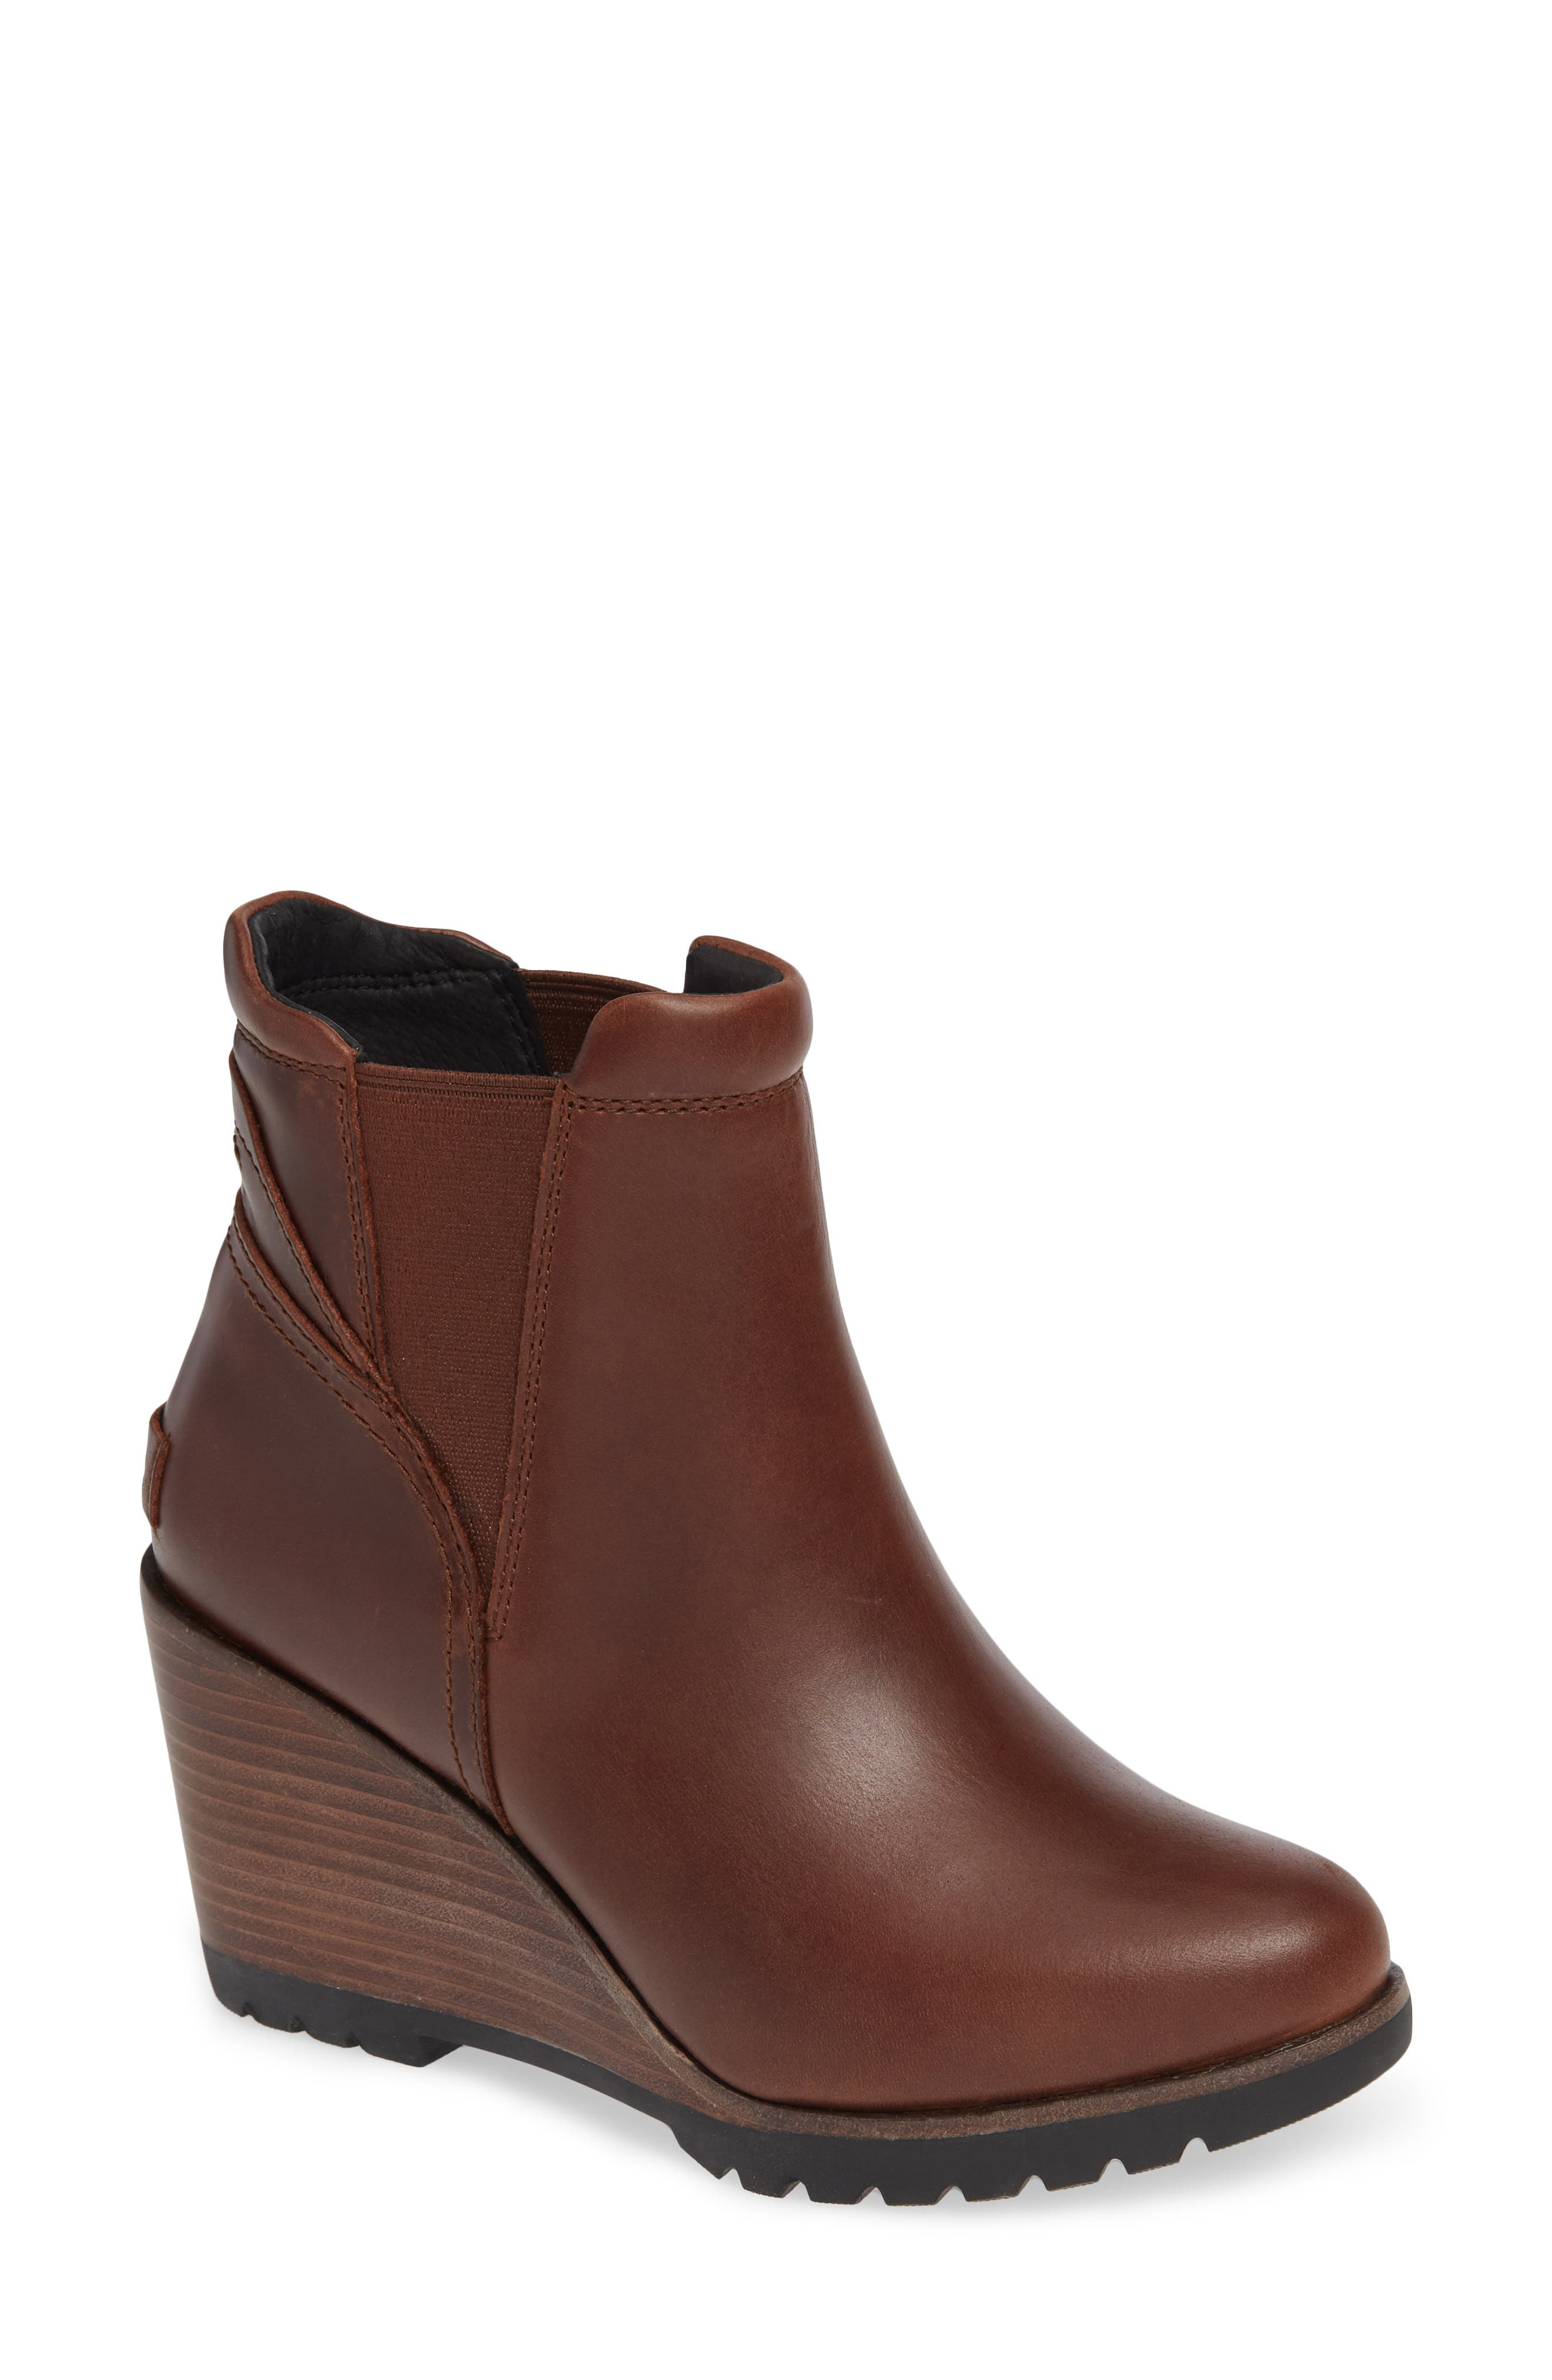 After Hours Chelsea Boot,                         Main,                         color, 200